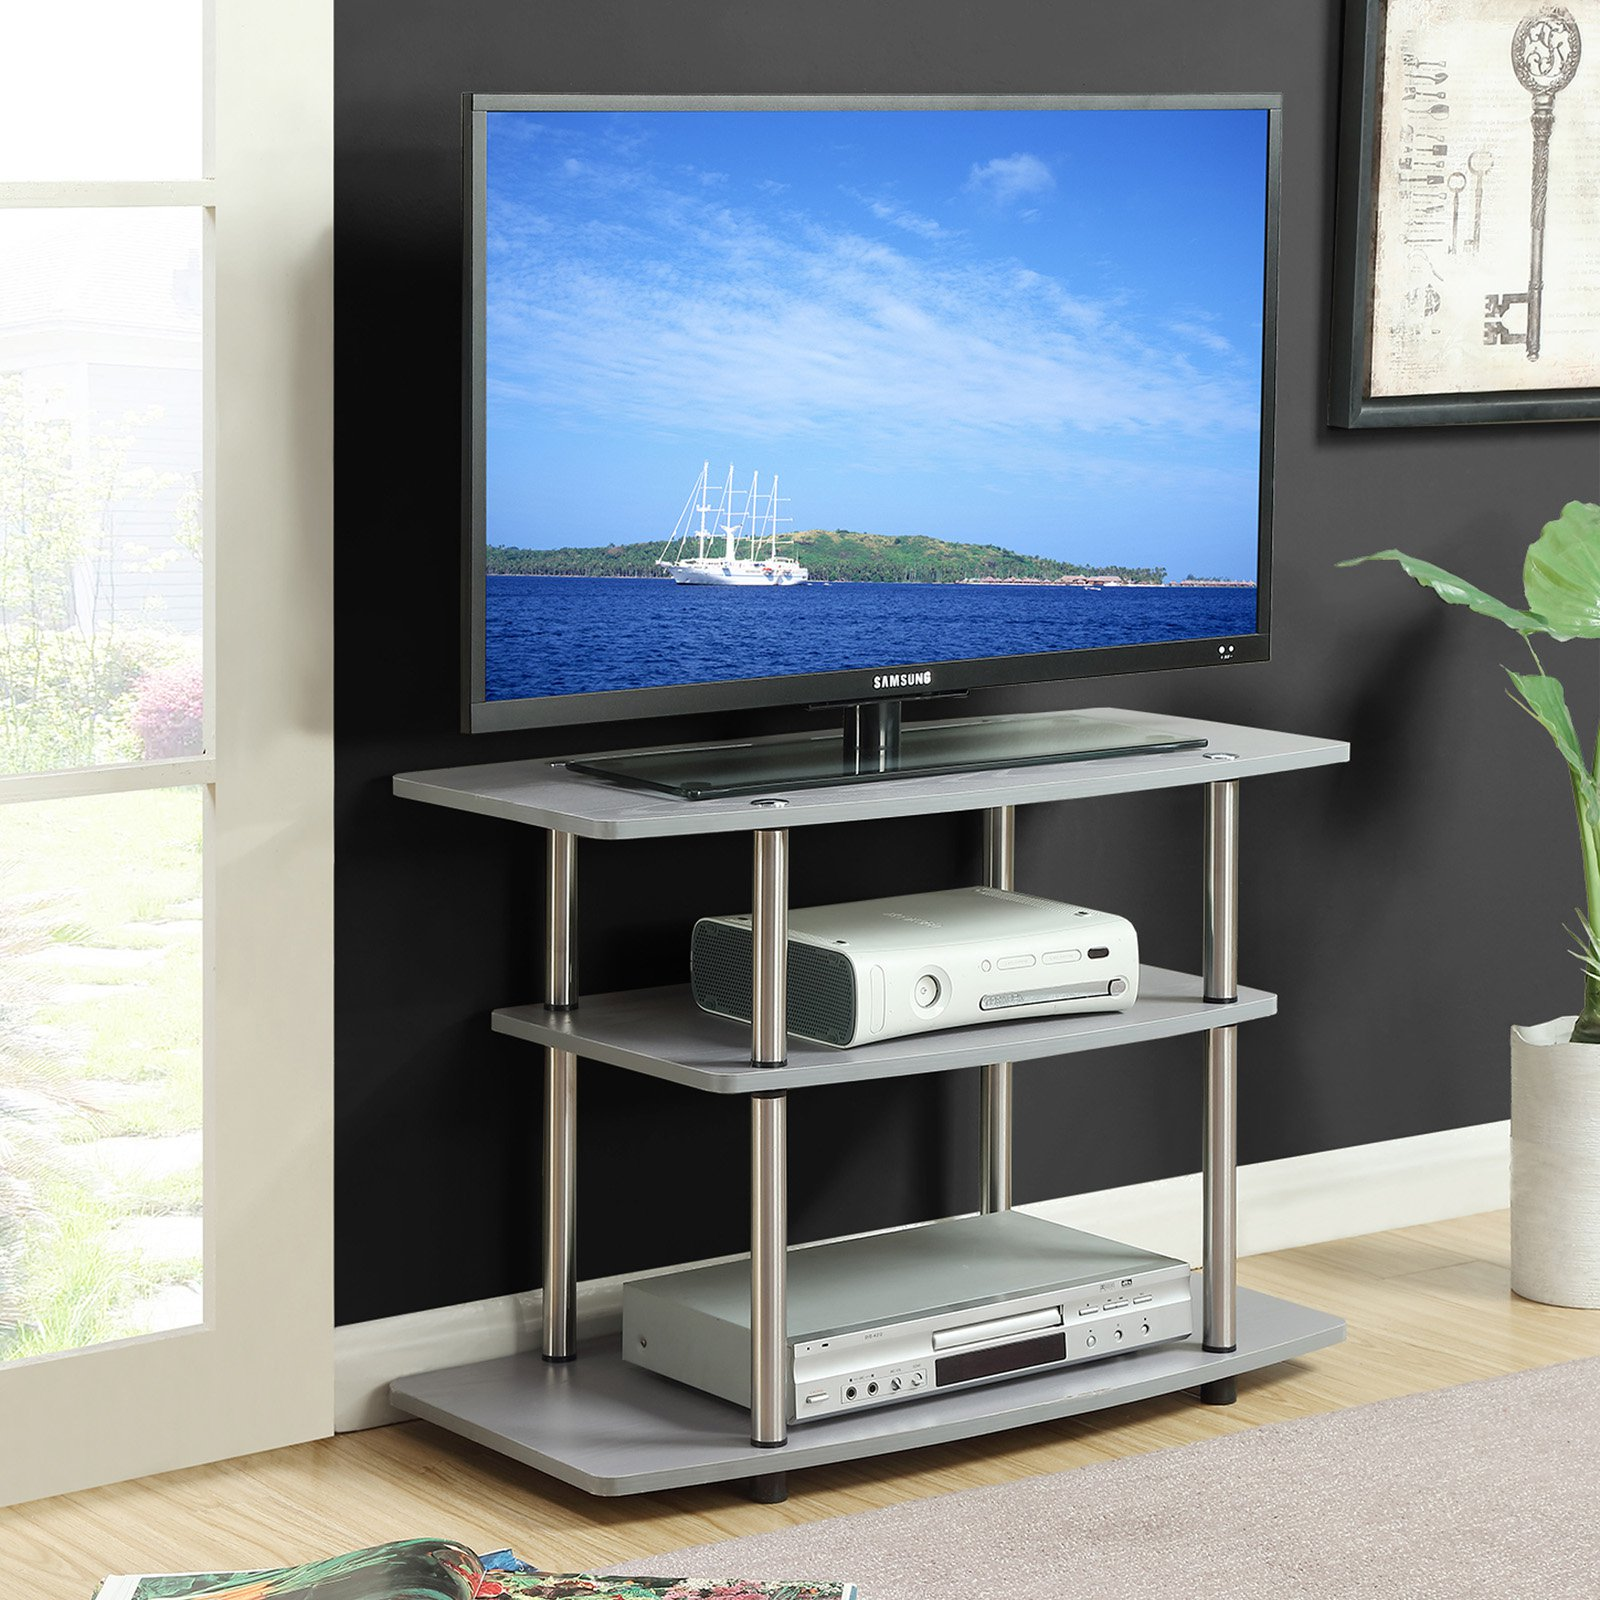 Convenience Concepts Designs2Go No Tools 3 Tier TV Stand, Multiple Colors by Convenience Concepts Inc